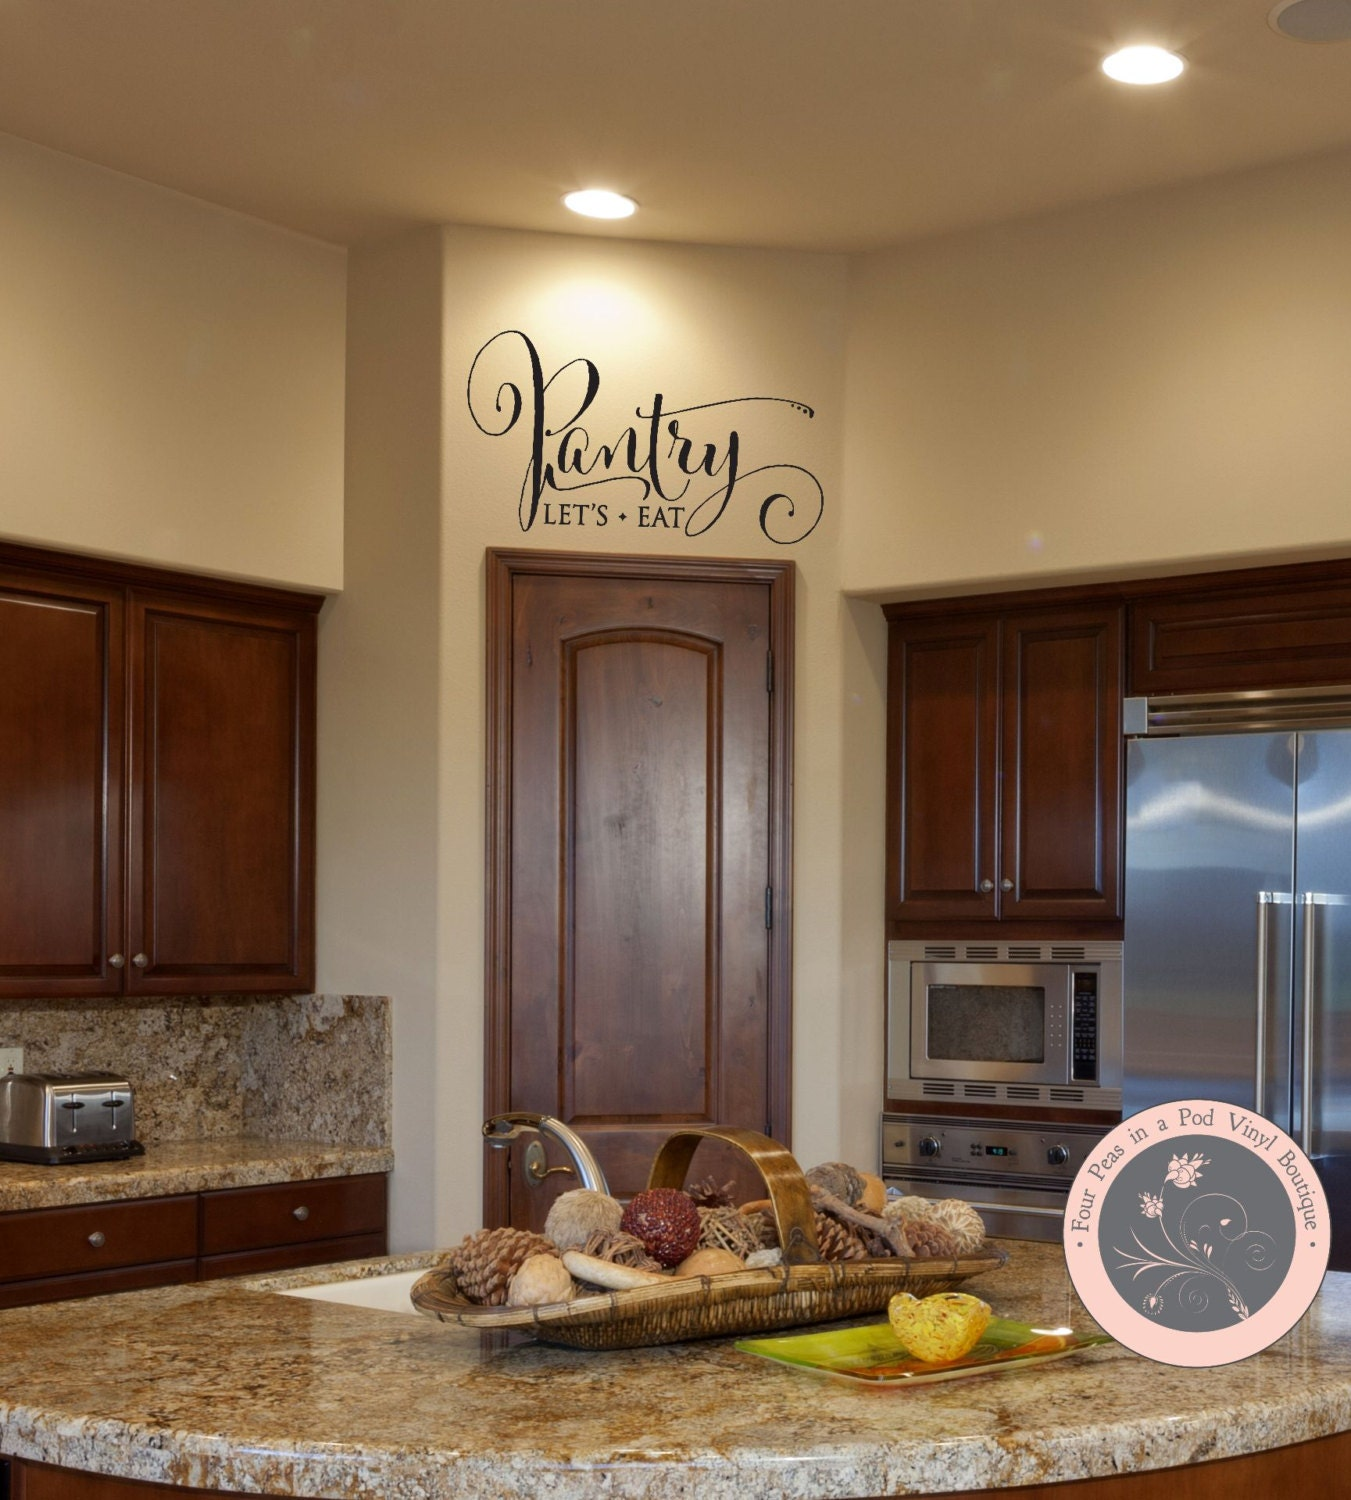 Wall Decals For The Home Pantry Wall Decal Kitchen Wall